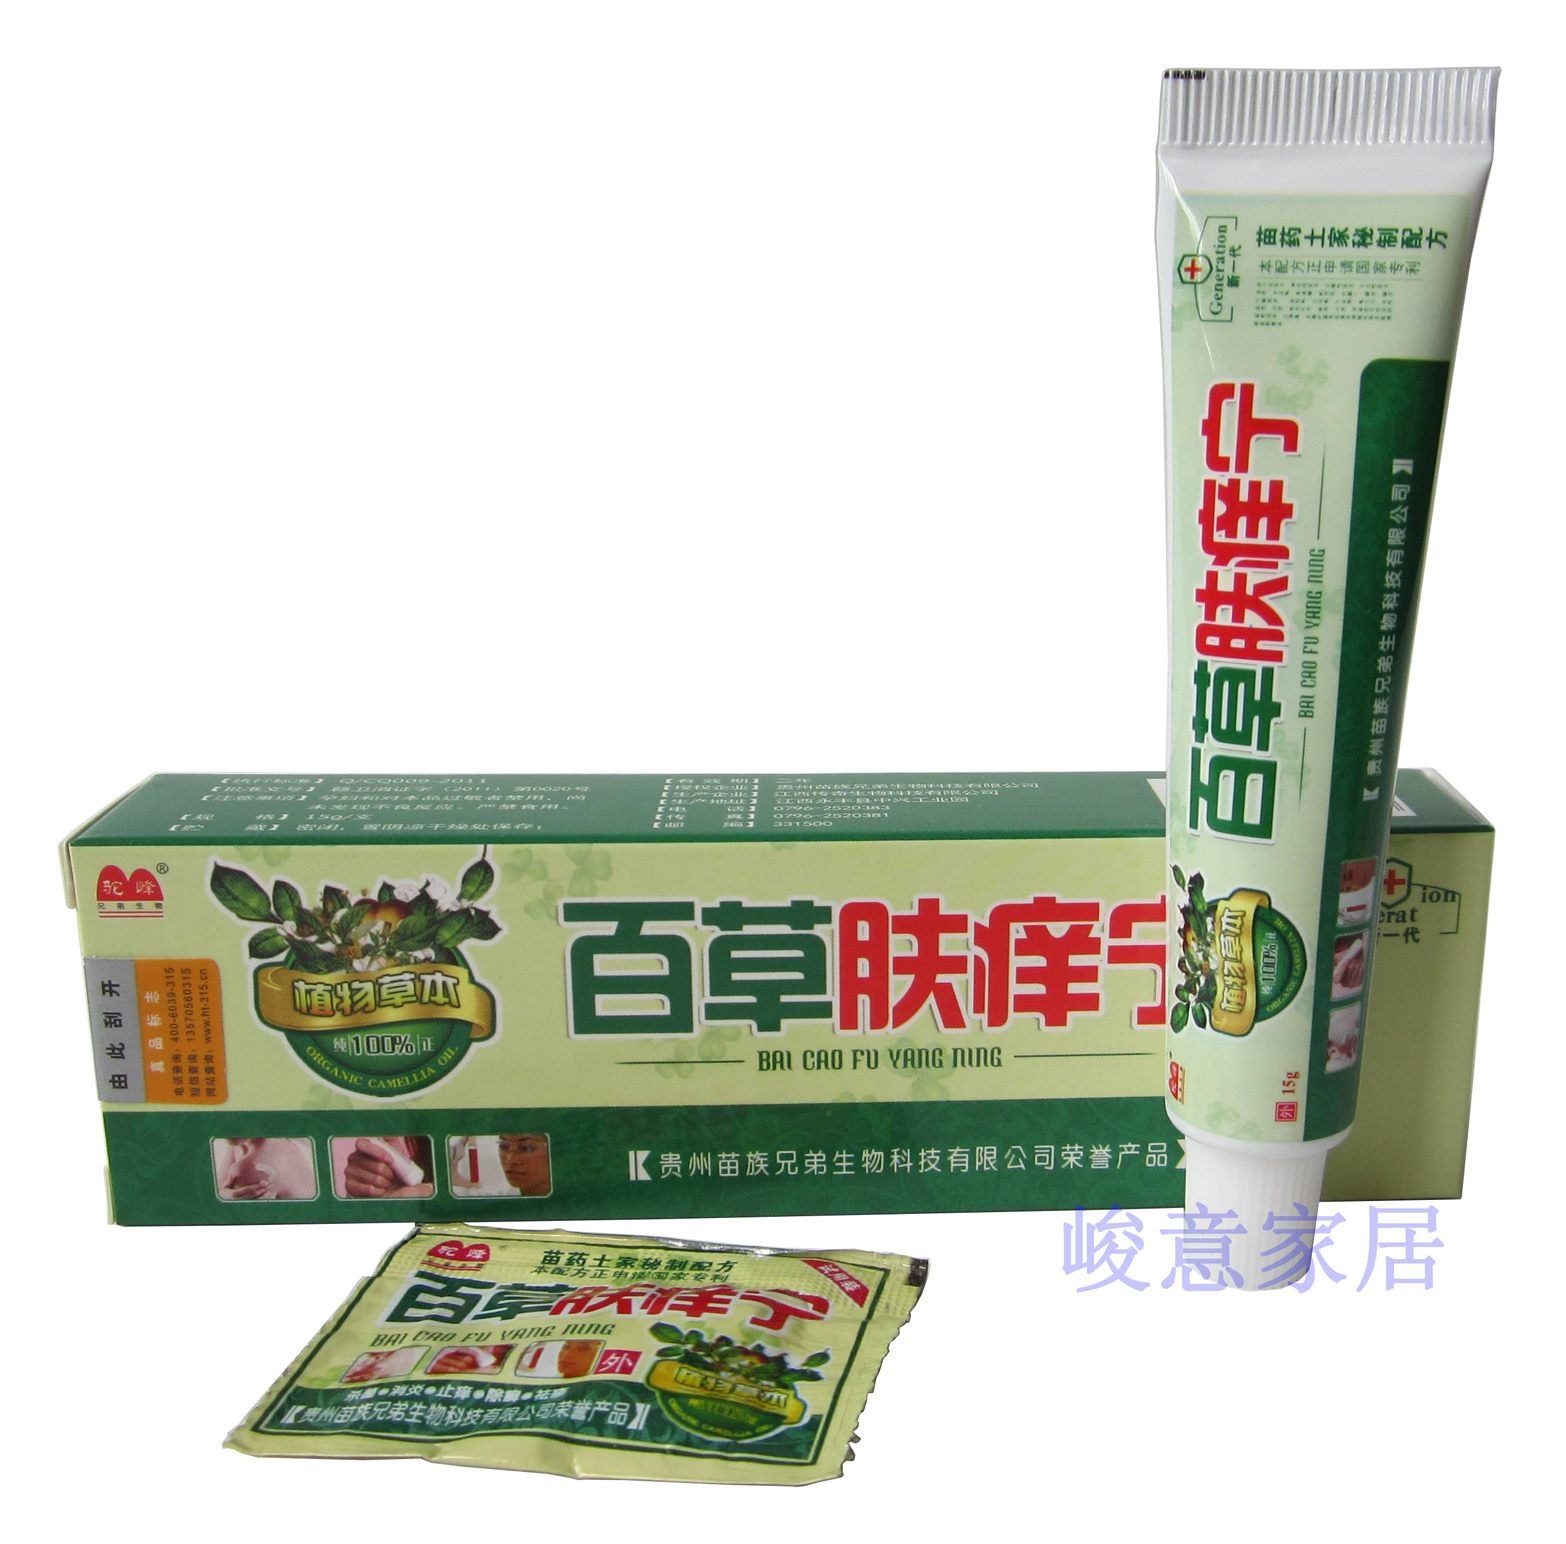 Herbs skin itch cream rather hump/buy 3 get 1 buy 5 get 2 trial pack 1:1 reprovision /Herbs skin itch ointment